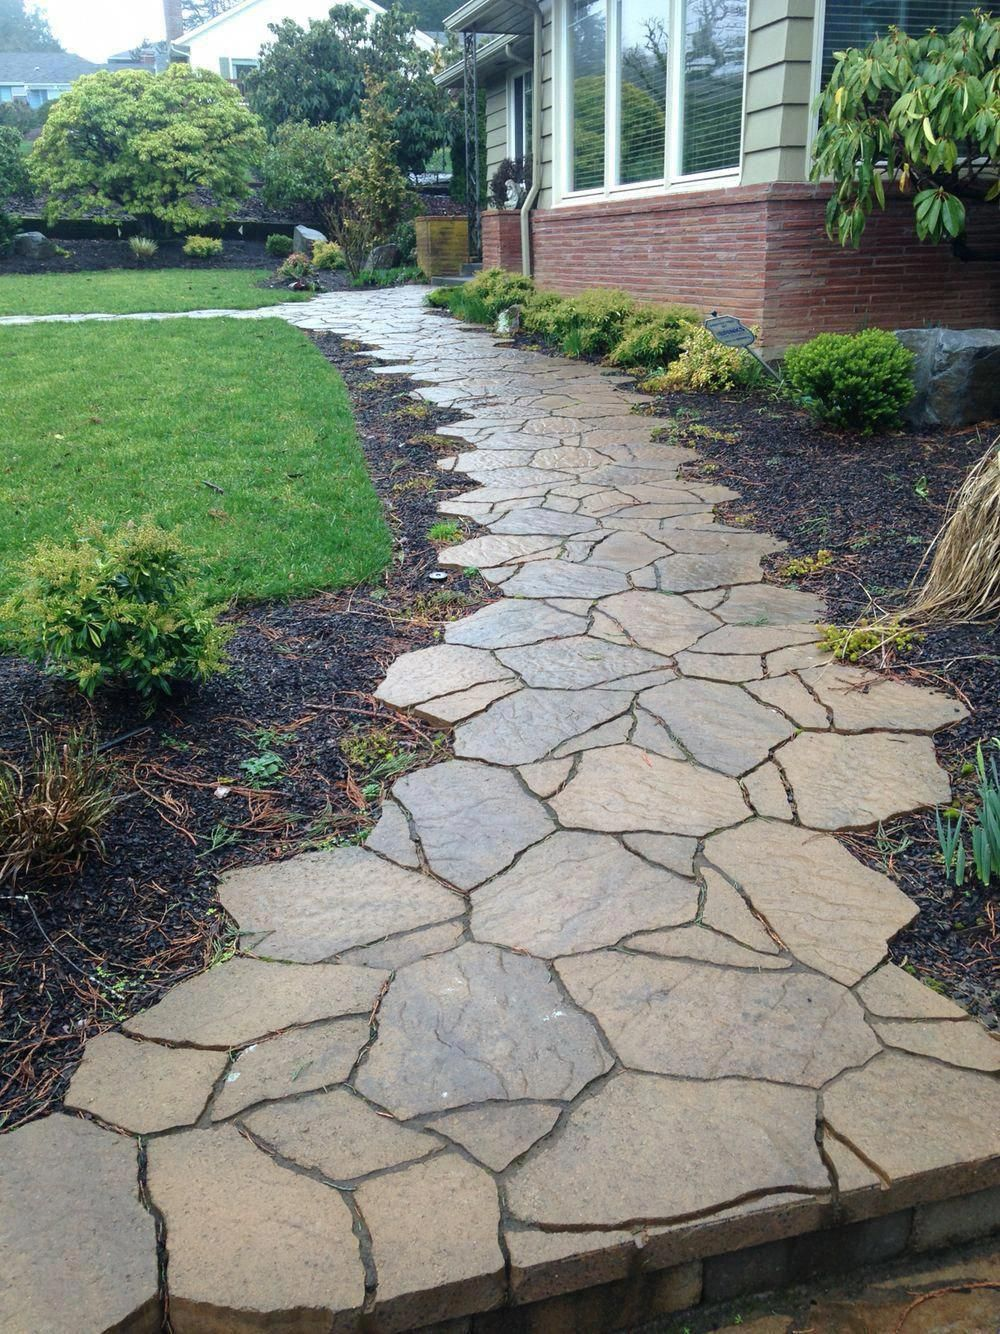 Amazing options to take a look at #frontwalkway #flagstonepathway